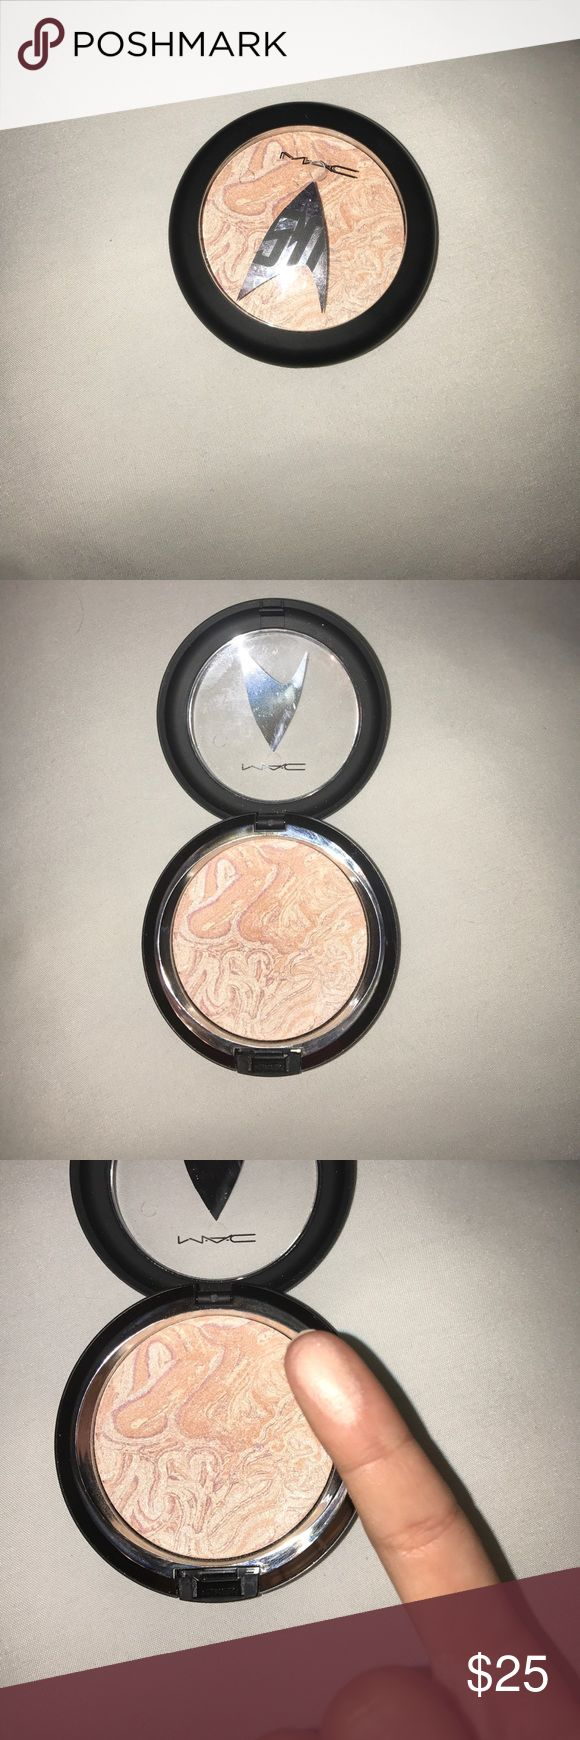 Mac Highlighter in shade Luna Luster A highlighter with the perfect shimmer! Long lasting highlighter, it never slips throughout the day. Only been used about 2 times! MAC Cosmetics Makeup Luminizer